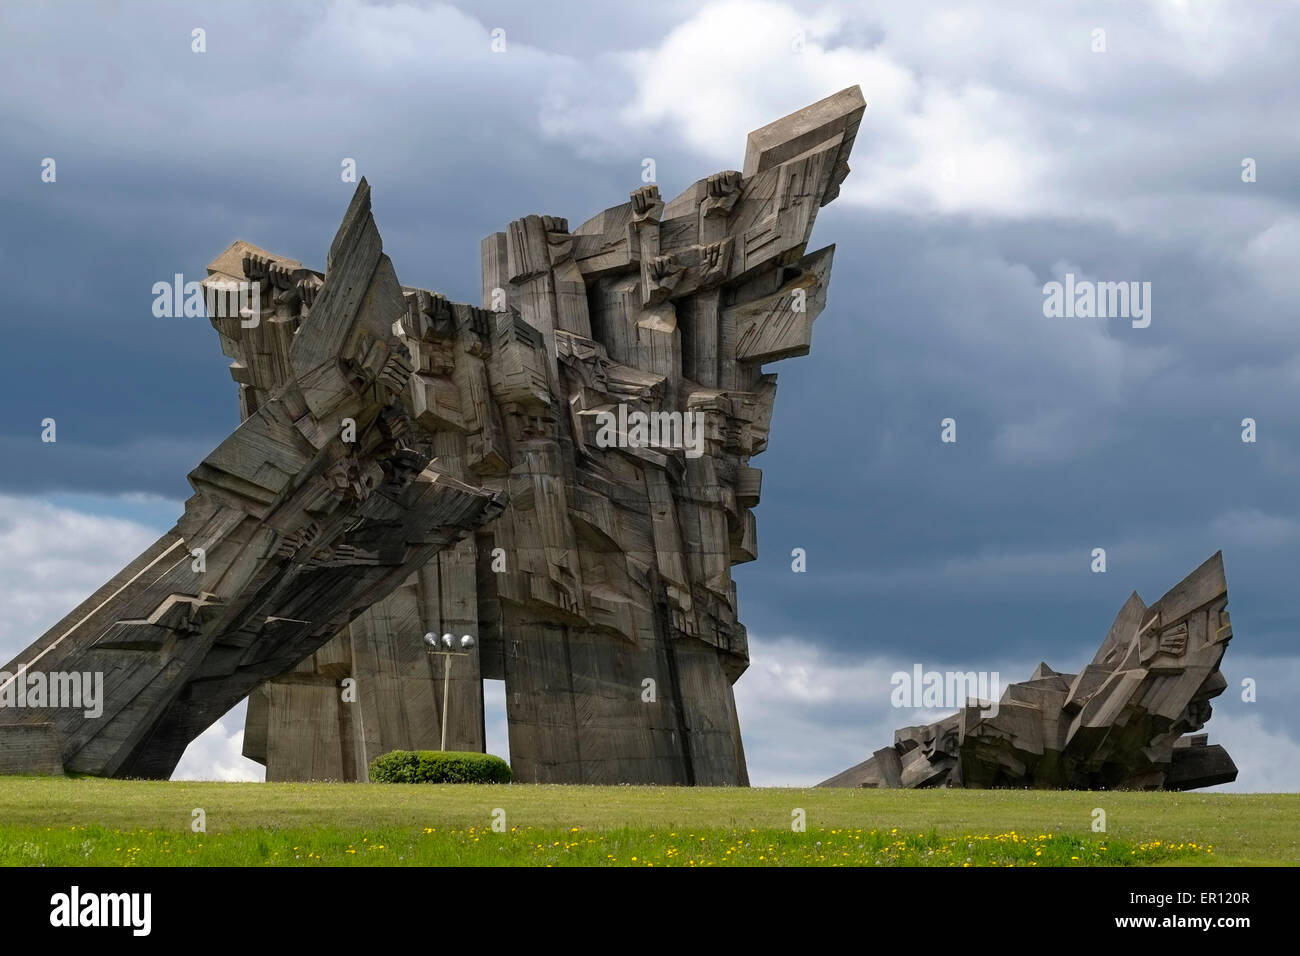 The memorial to the murdered Jews of Kaunas and victims of Nazism designed by Alfonsas Ambraziūnas at the Ninth - Stock Image